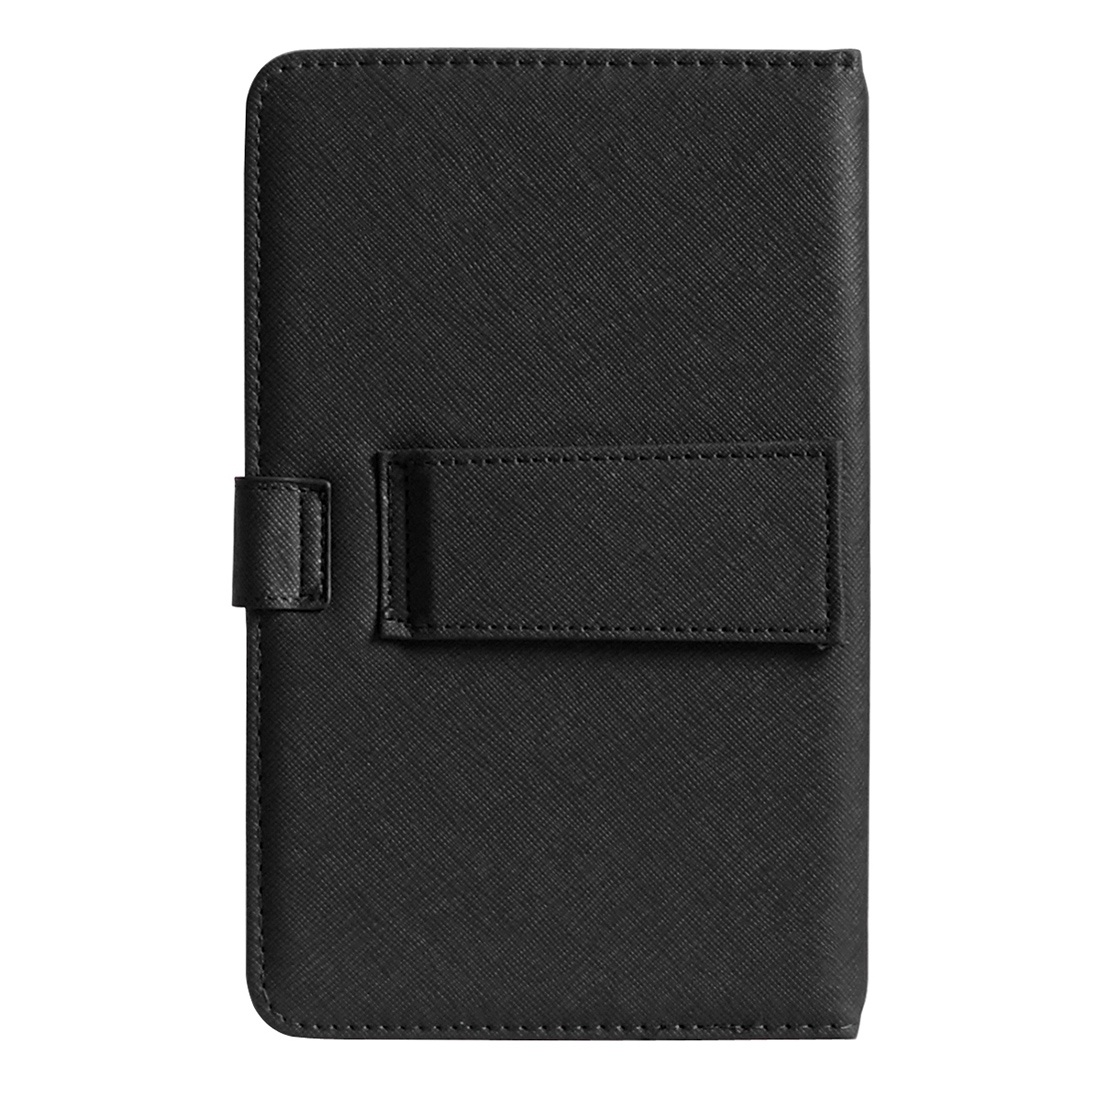 Universal Android Mobile Phone Leather Case with Keyboard (Black) - Intl - thumbnail